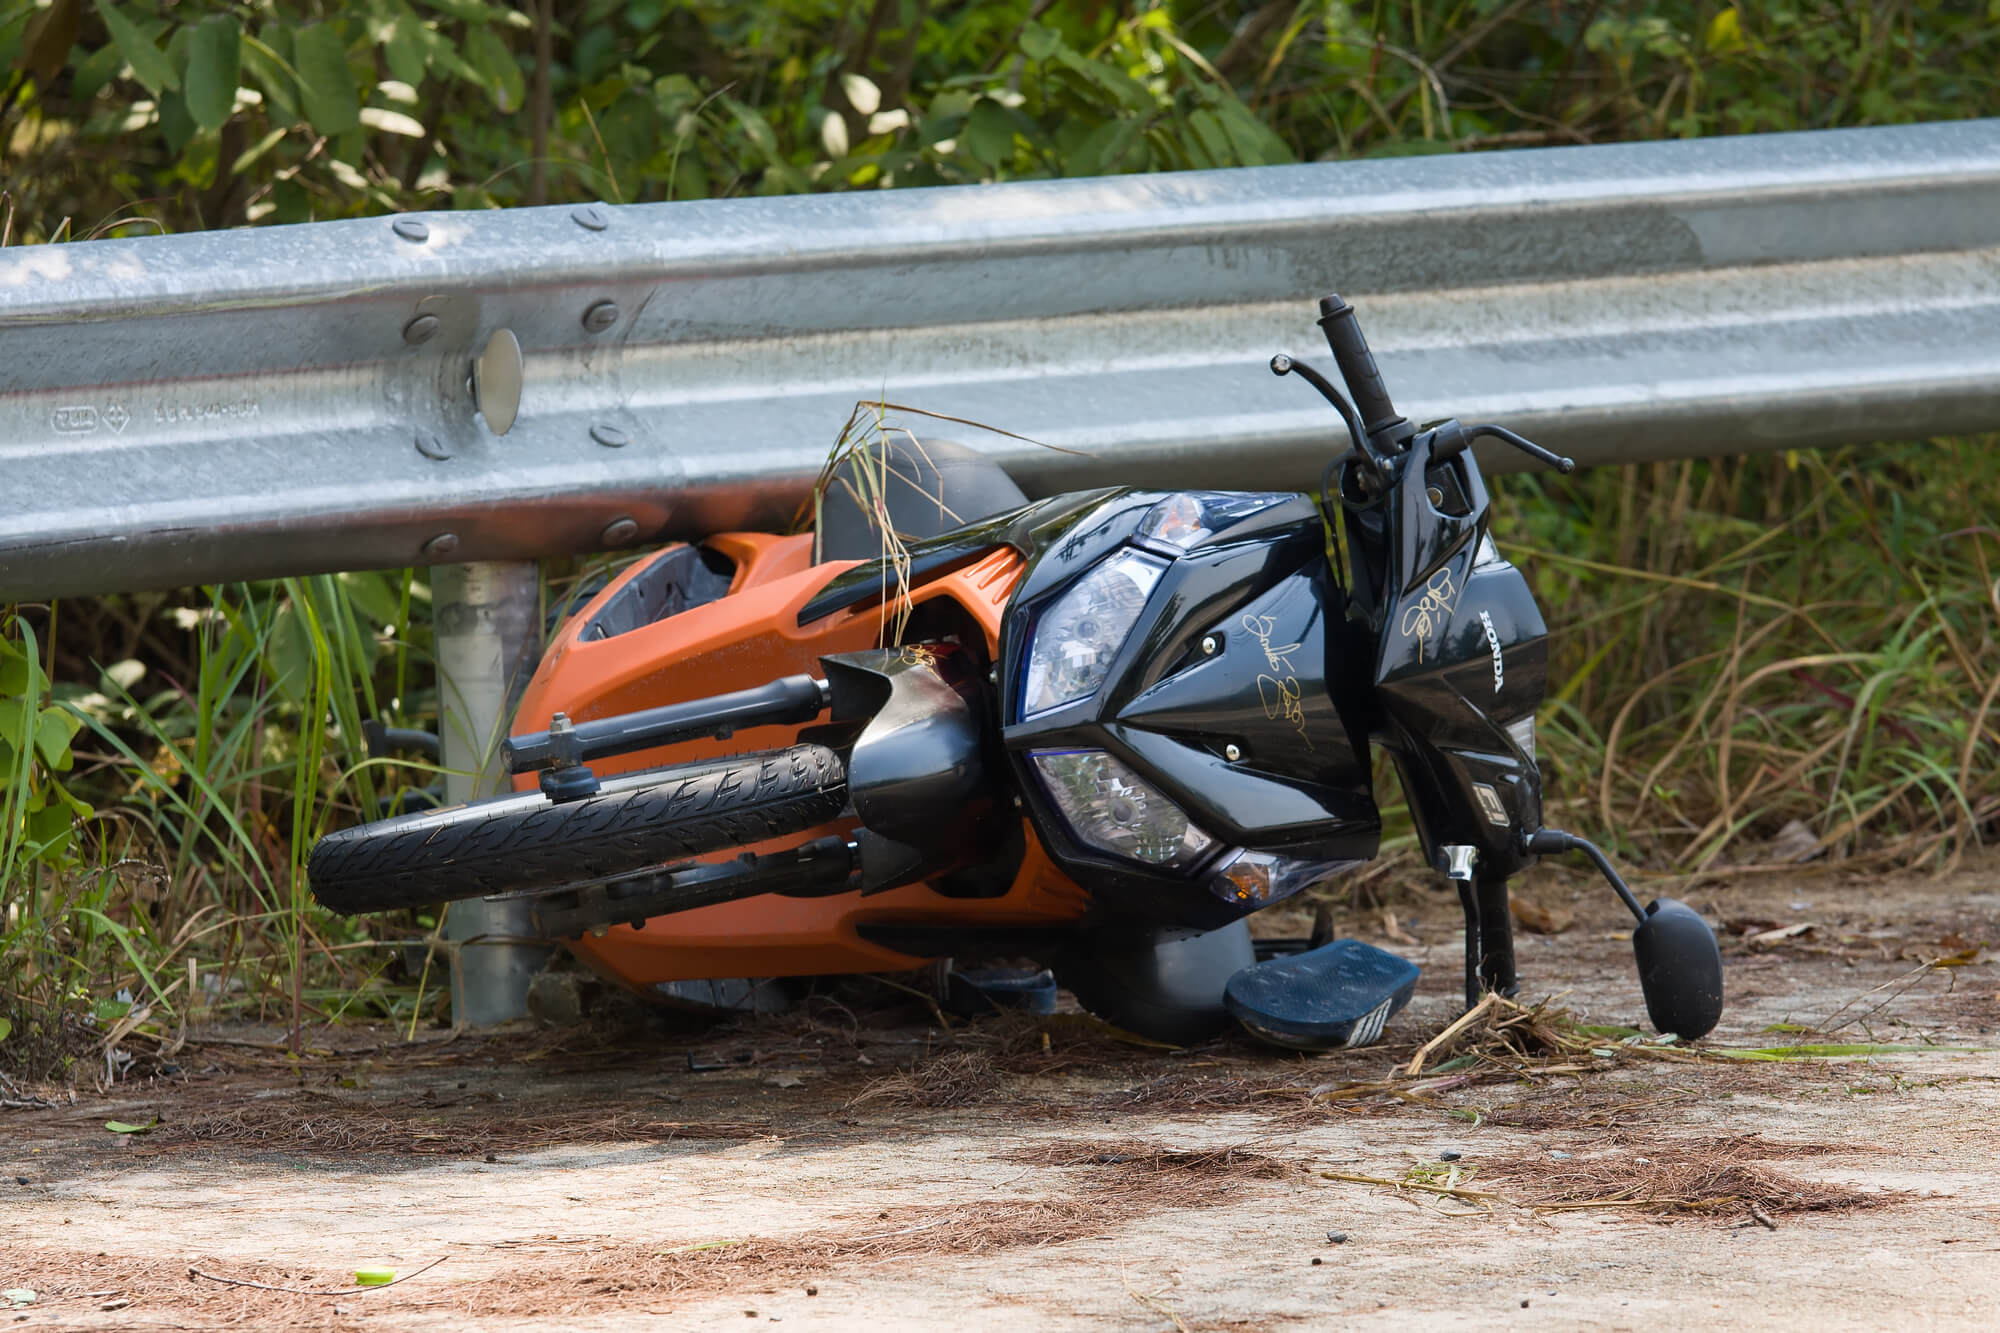 Antioch Resident Killed in Motorcycle Accident